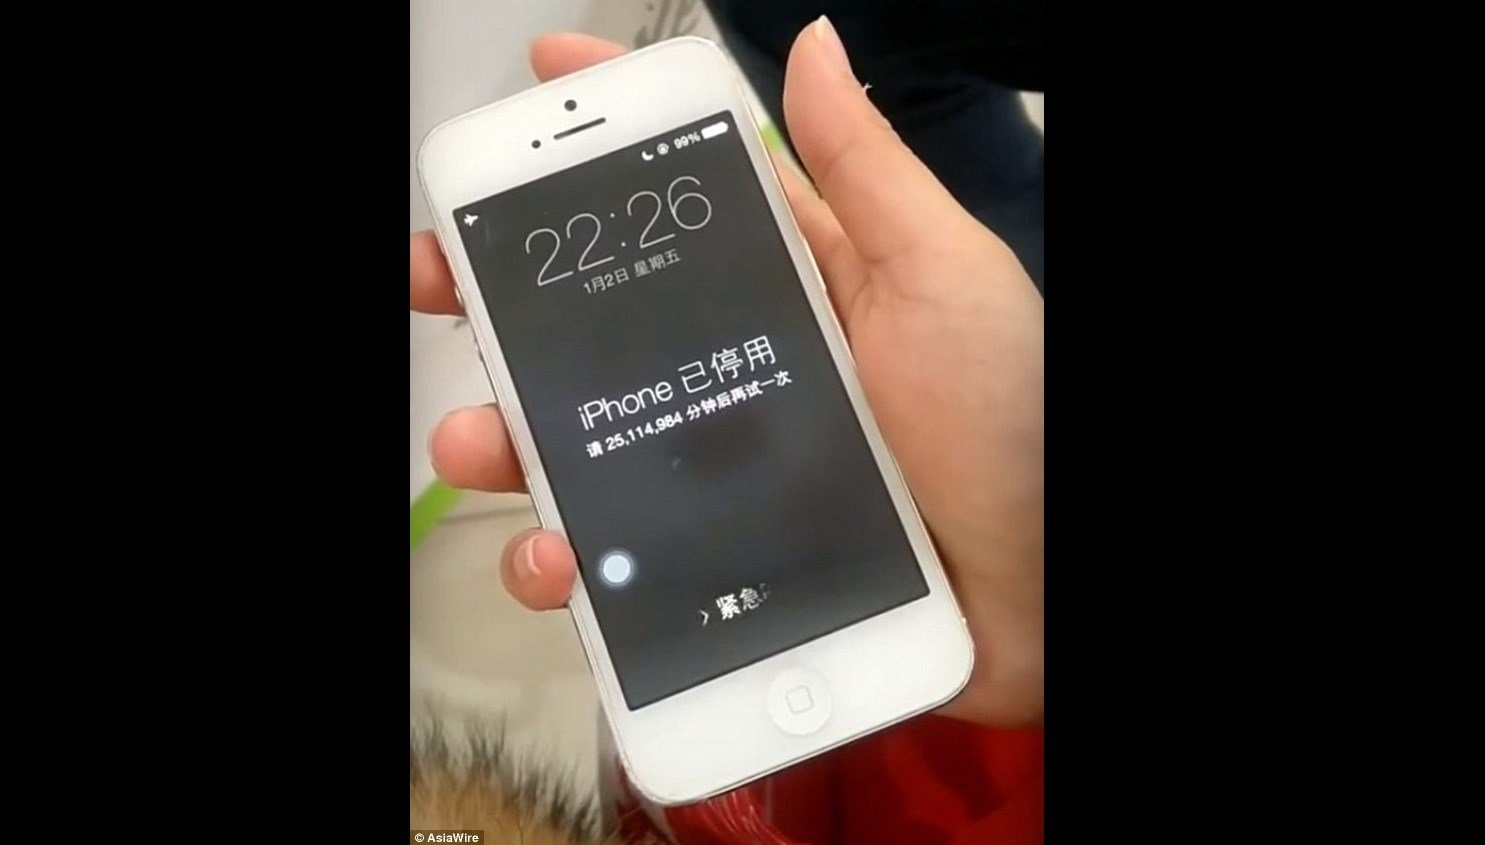 A woman in China says her toddler locked her iPhone for 47 years, after repeatedly entering the wrong passcode. @Courtesy Asiawire